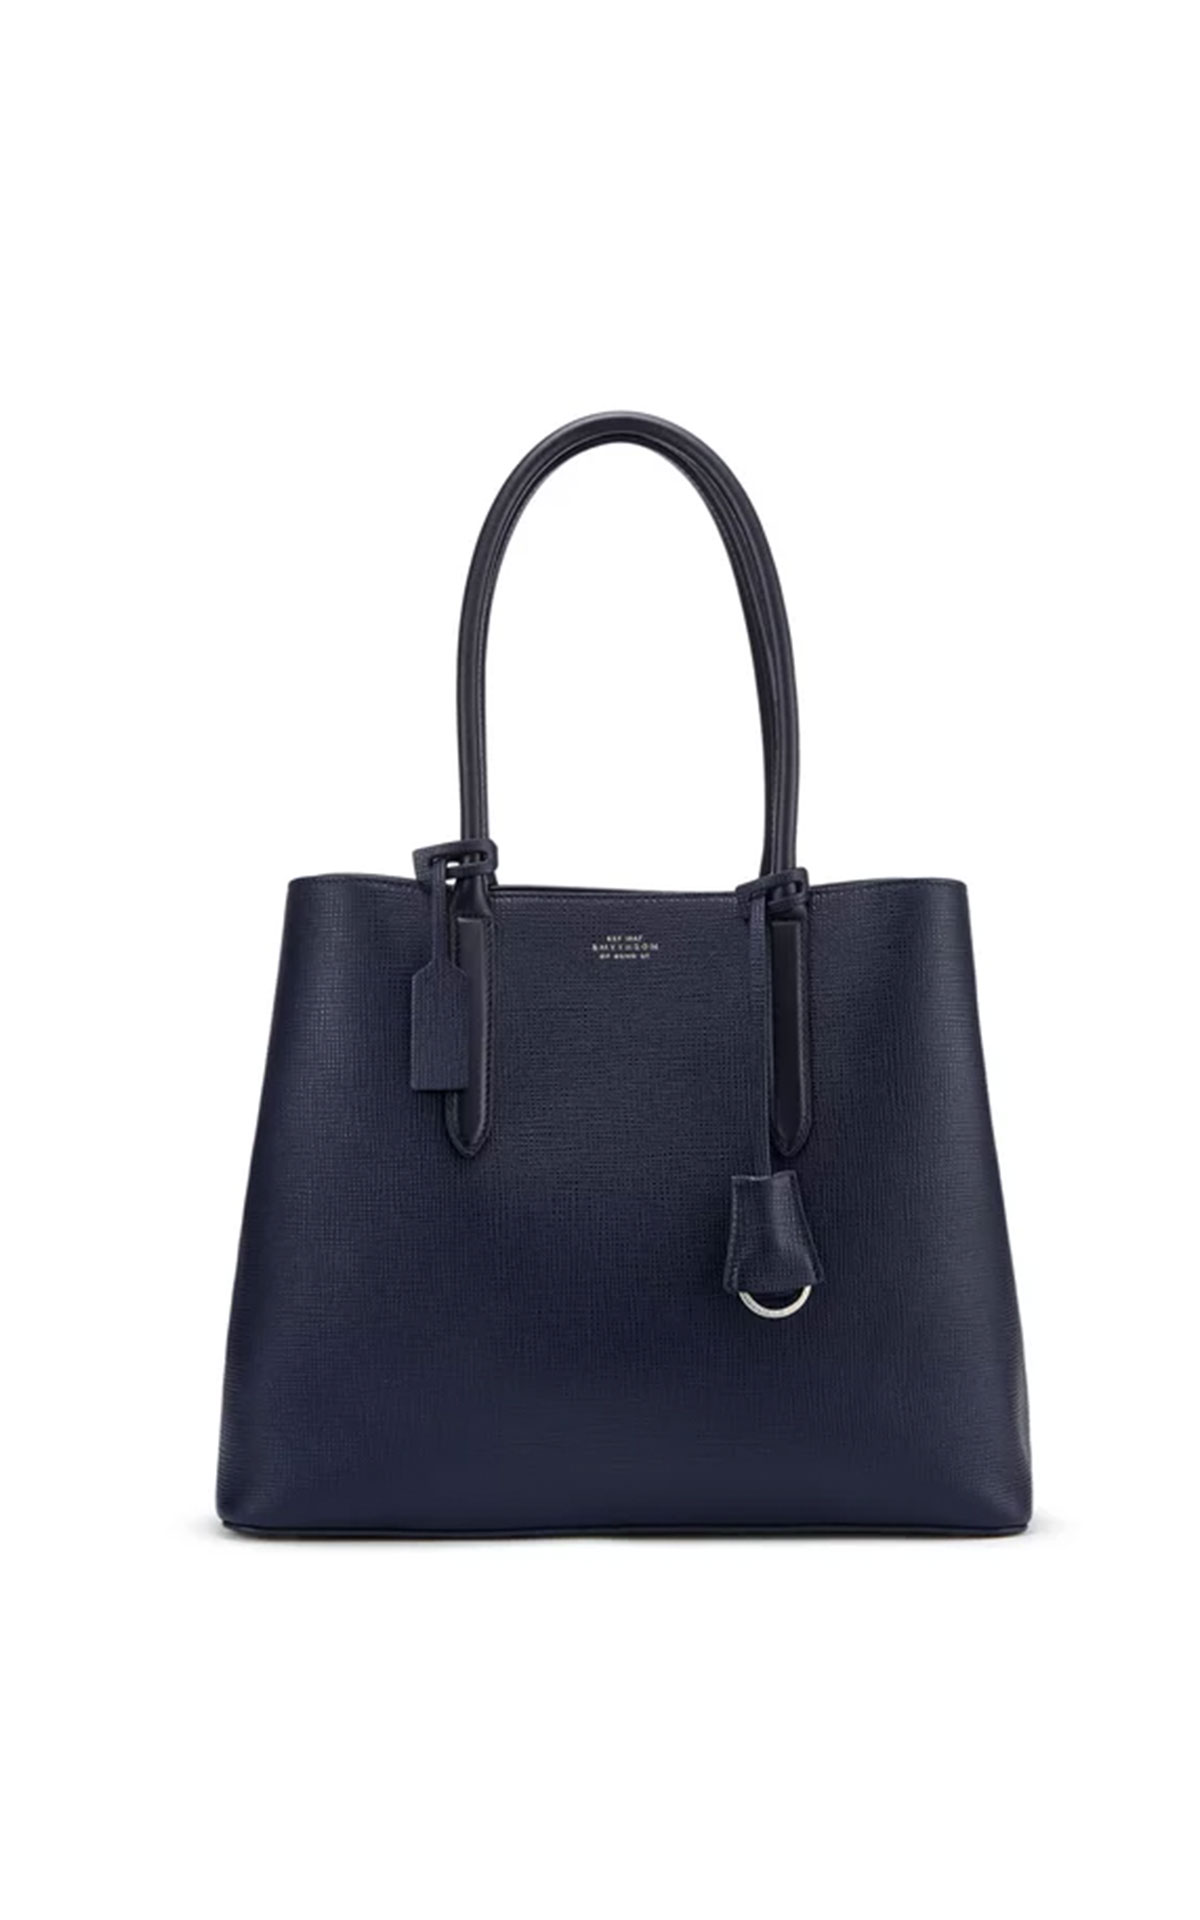 Smythson Panama ciappa business bag from Bicester Village